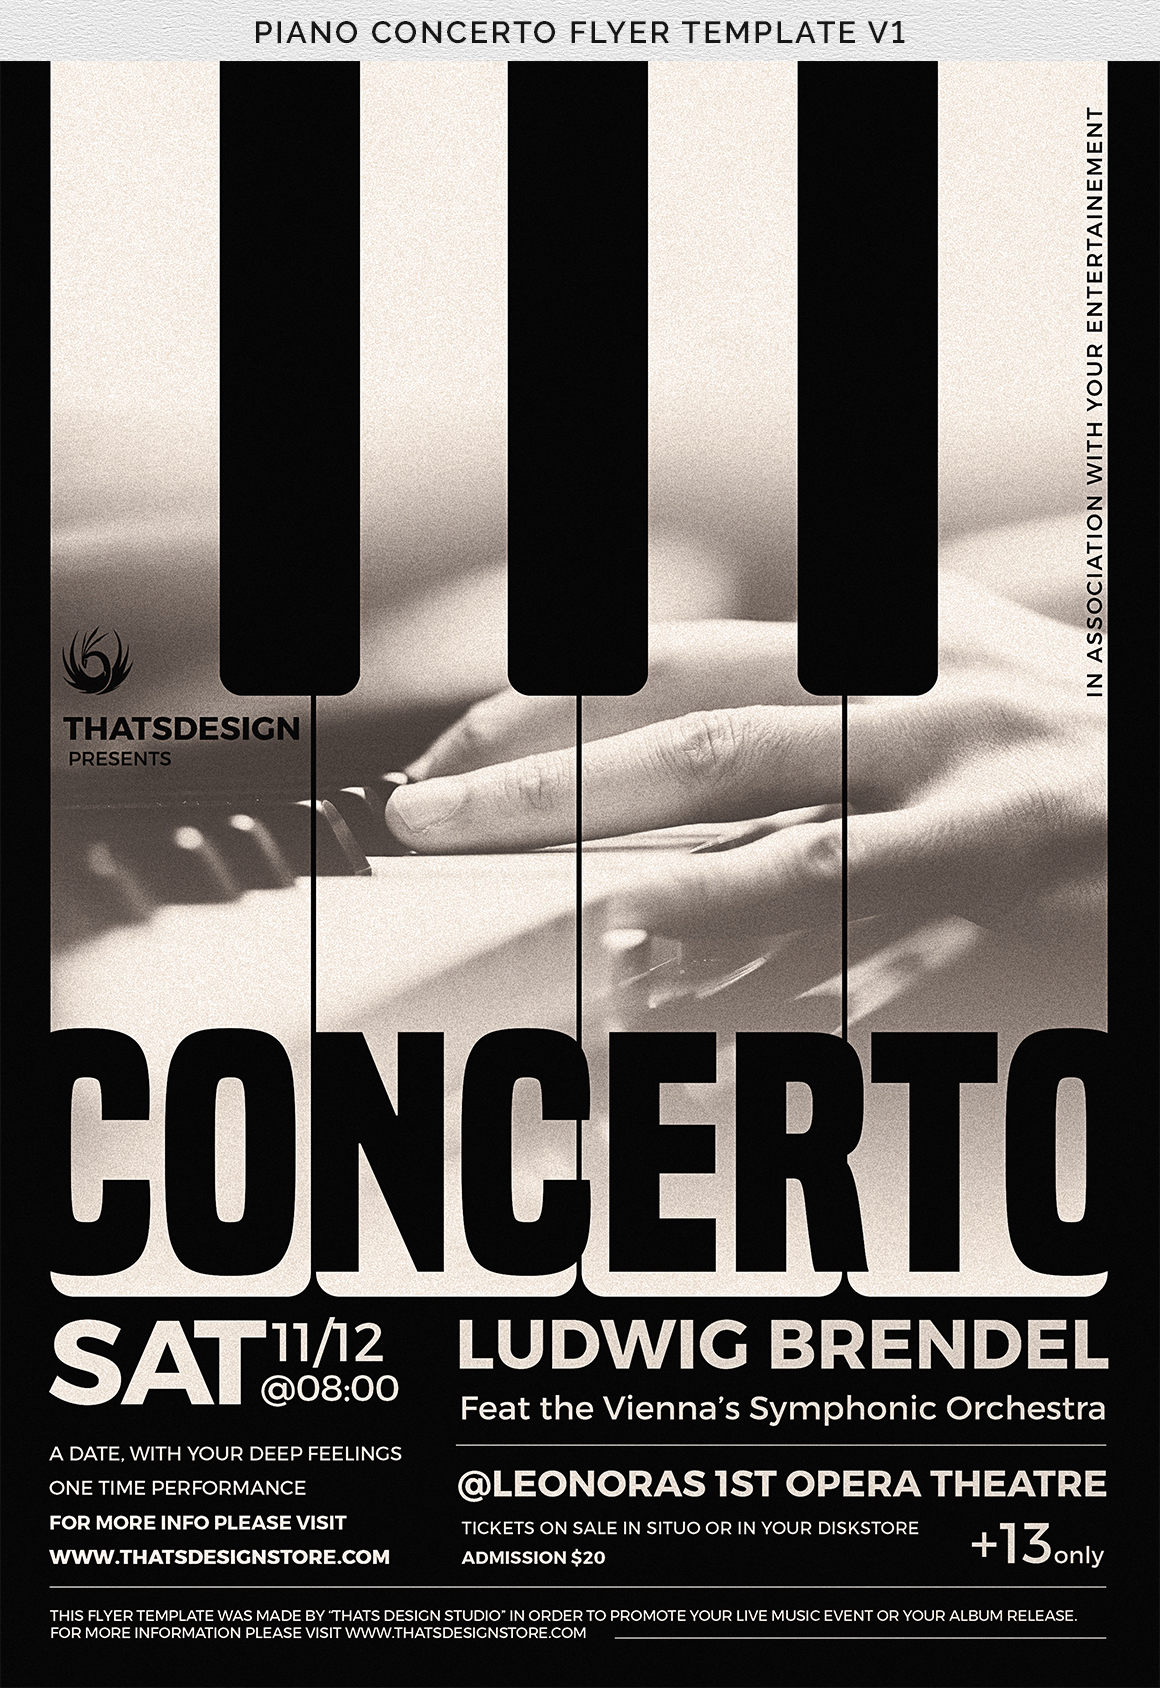 Piano Concerto Flyer Template V1 example image 7